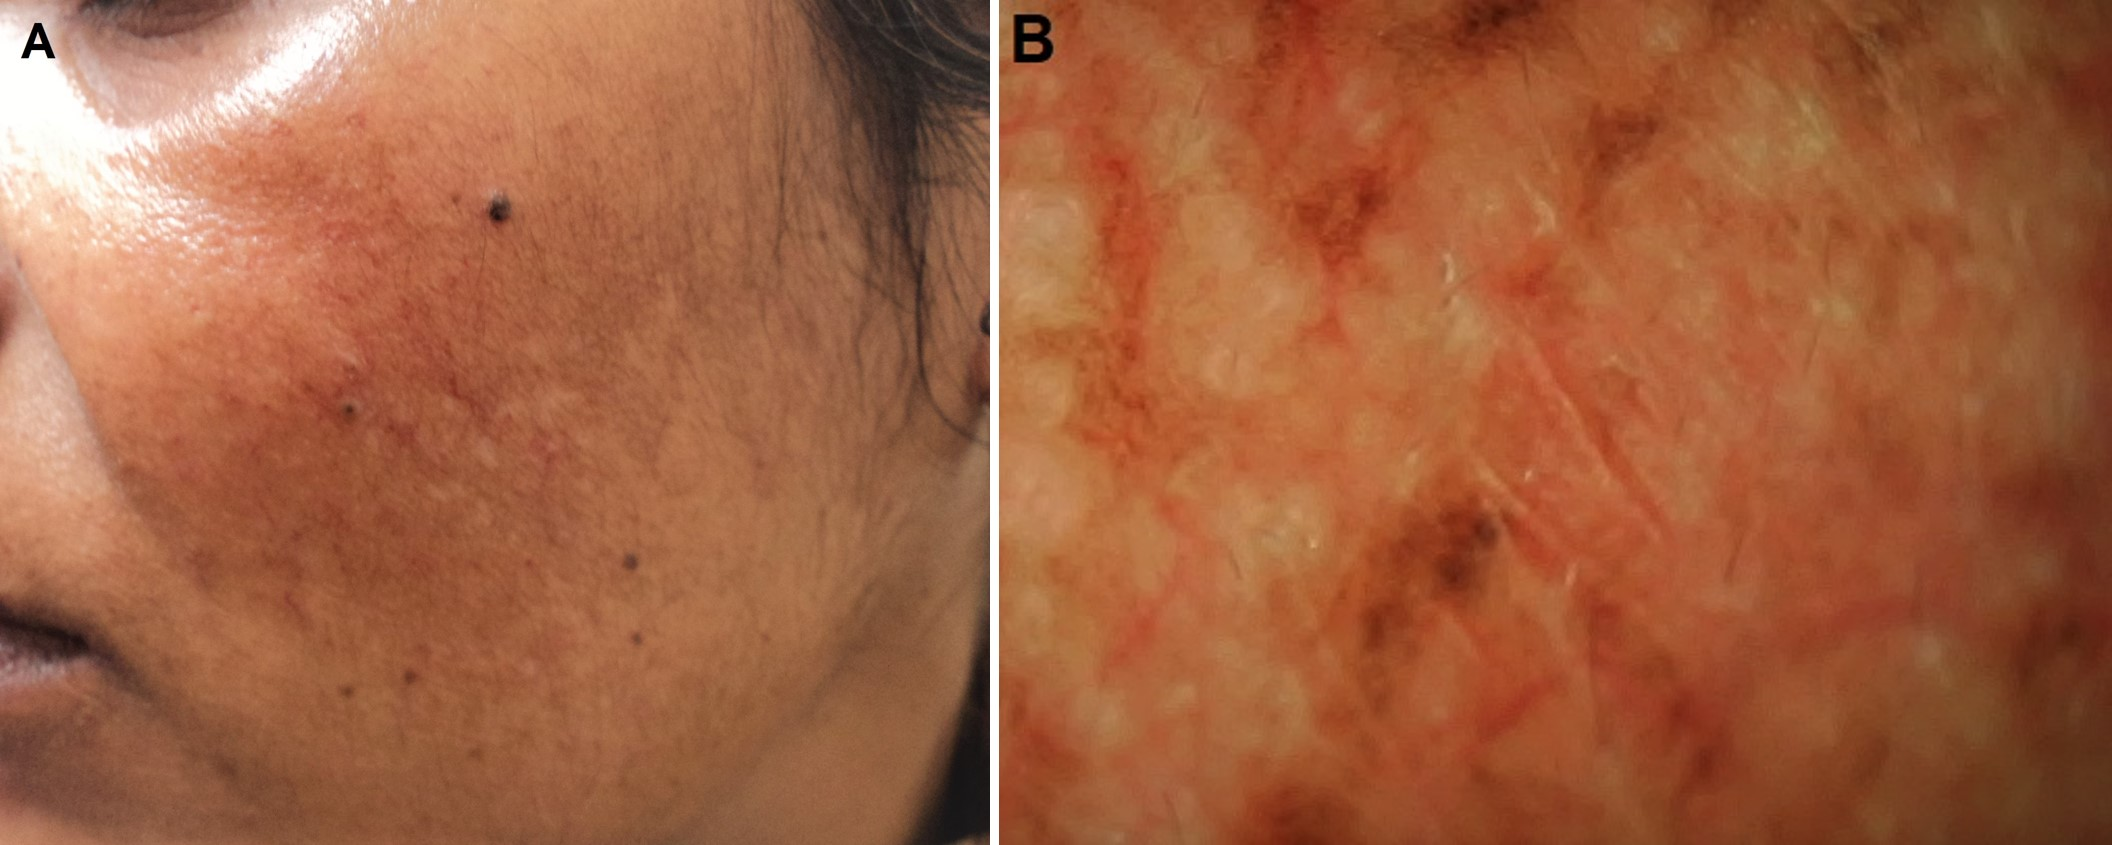 Figure 1: Treatment refractory melasma with history of mild photosensitivity in a 35-year old woman: A, Clinical image; and B, Dermoscopic image [E-Scope, Timpac Health Care Pvt. Ltd., polarized mode, 30X magnification]